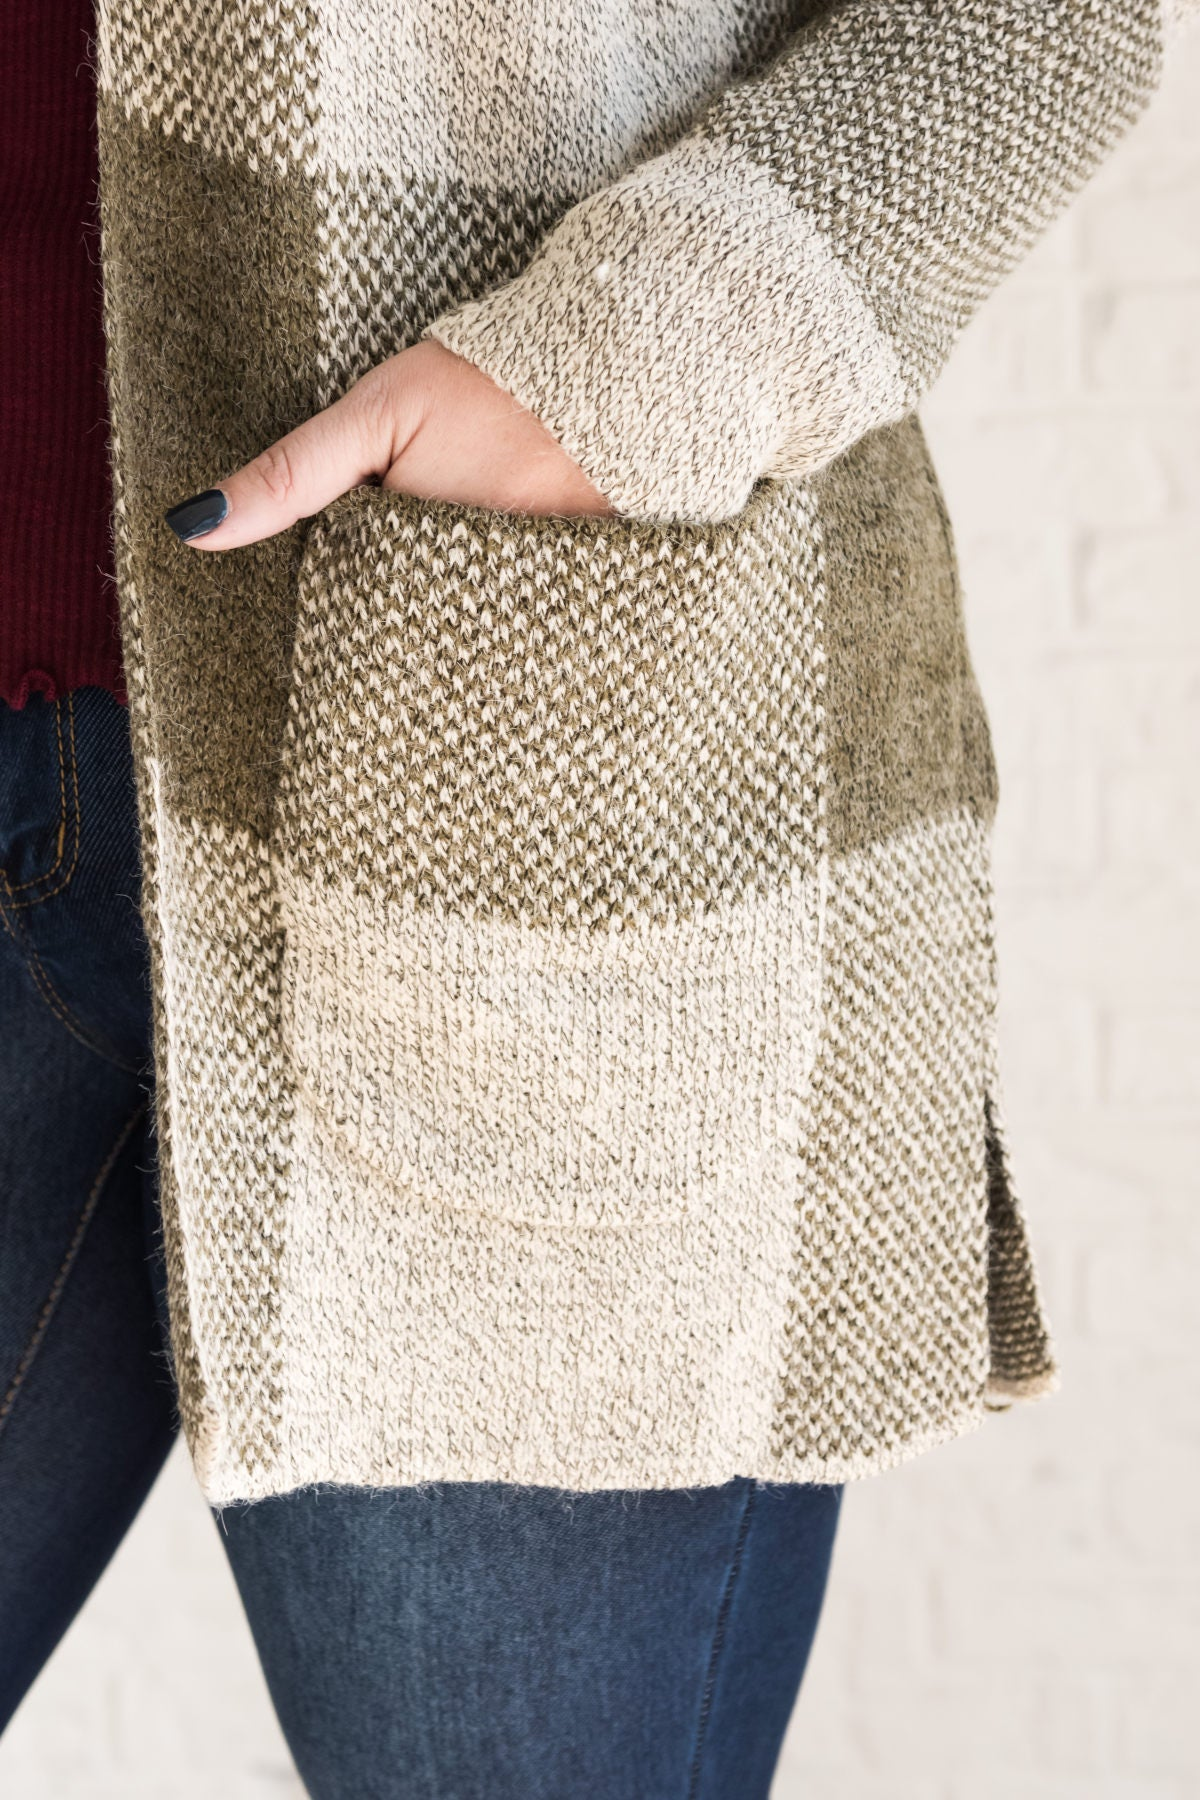 Olive Green Plus Size Sweaters and Cardigans with Pockets Cozy Warm Curvy  Boutique 6dabe4682